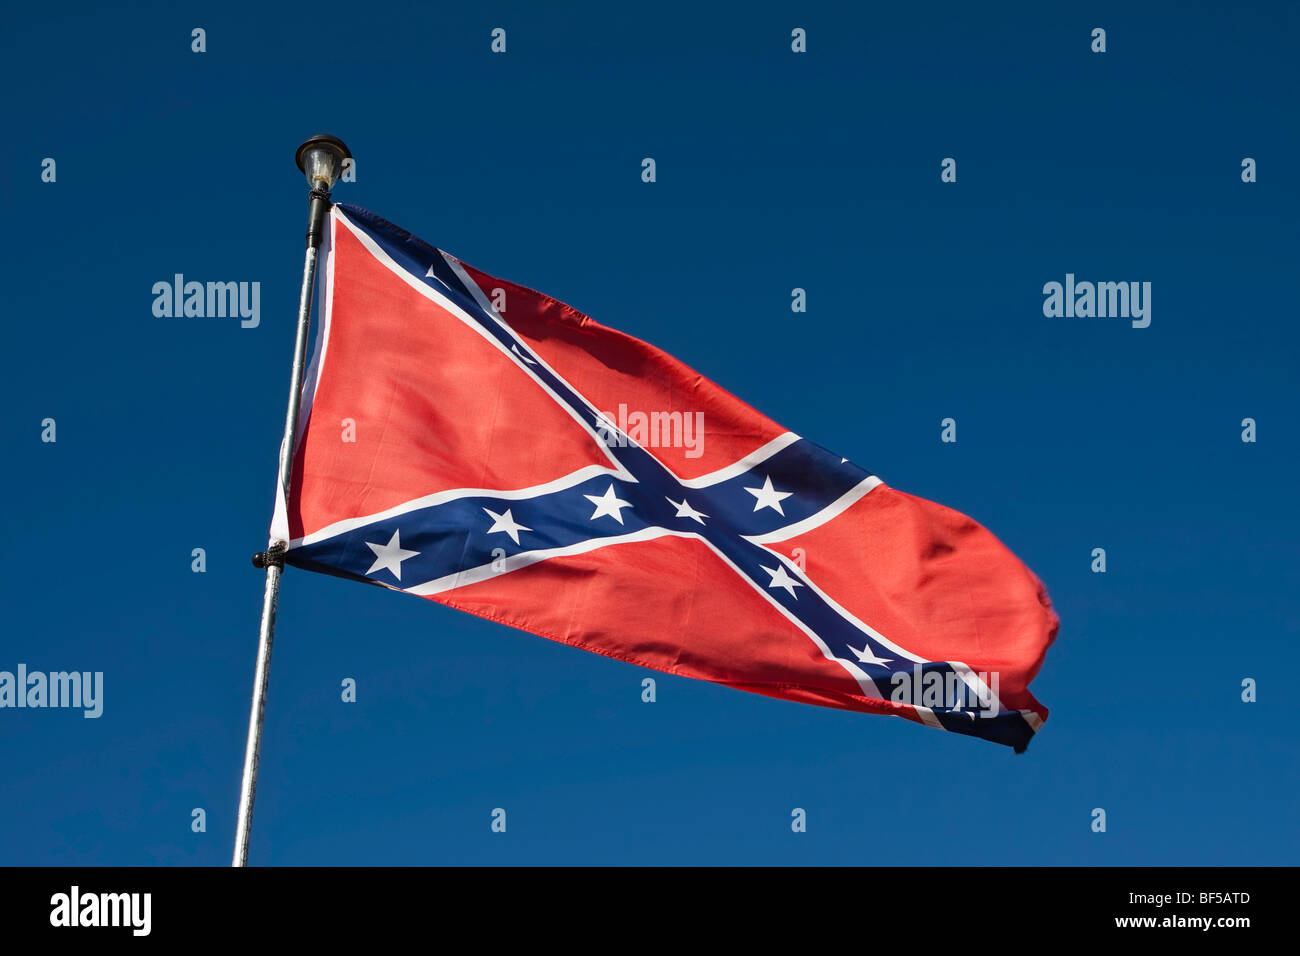 Flag of the Southern States of the United States of America - Stock Image